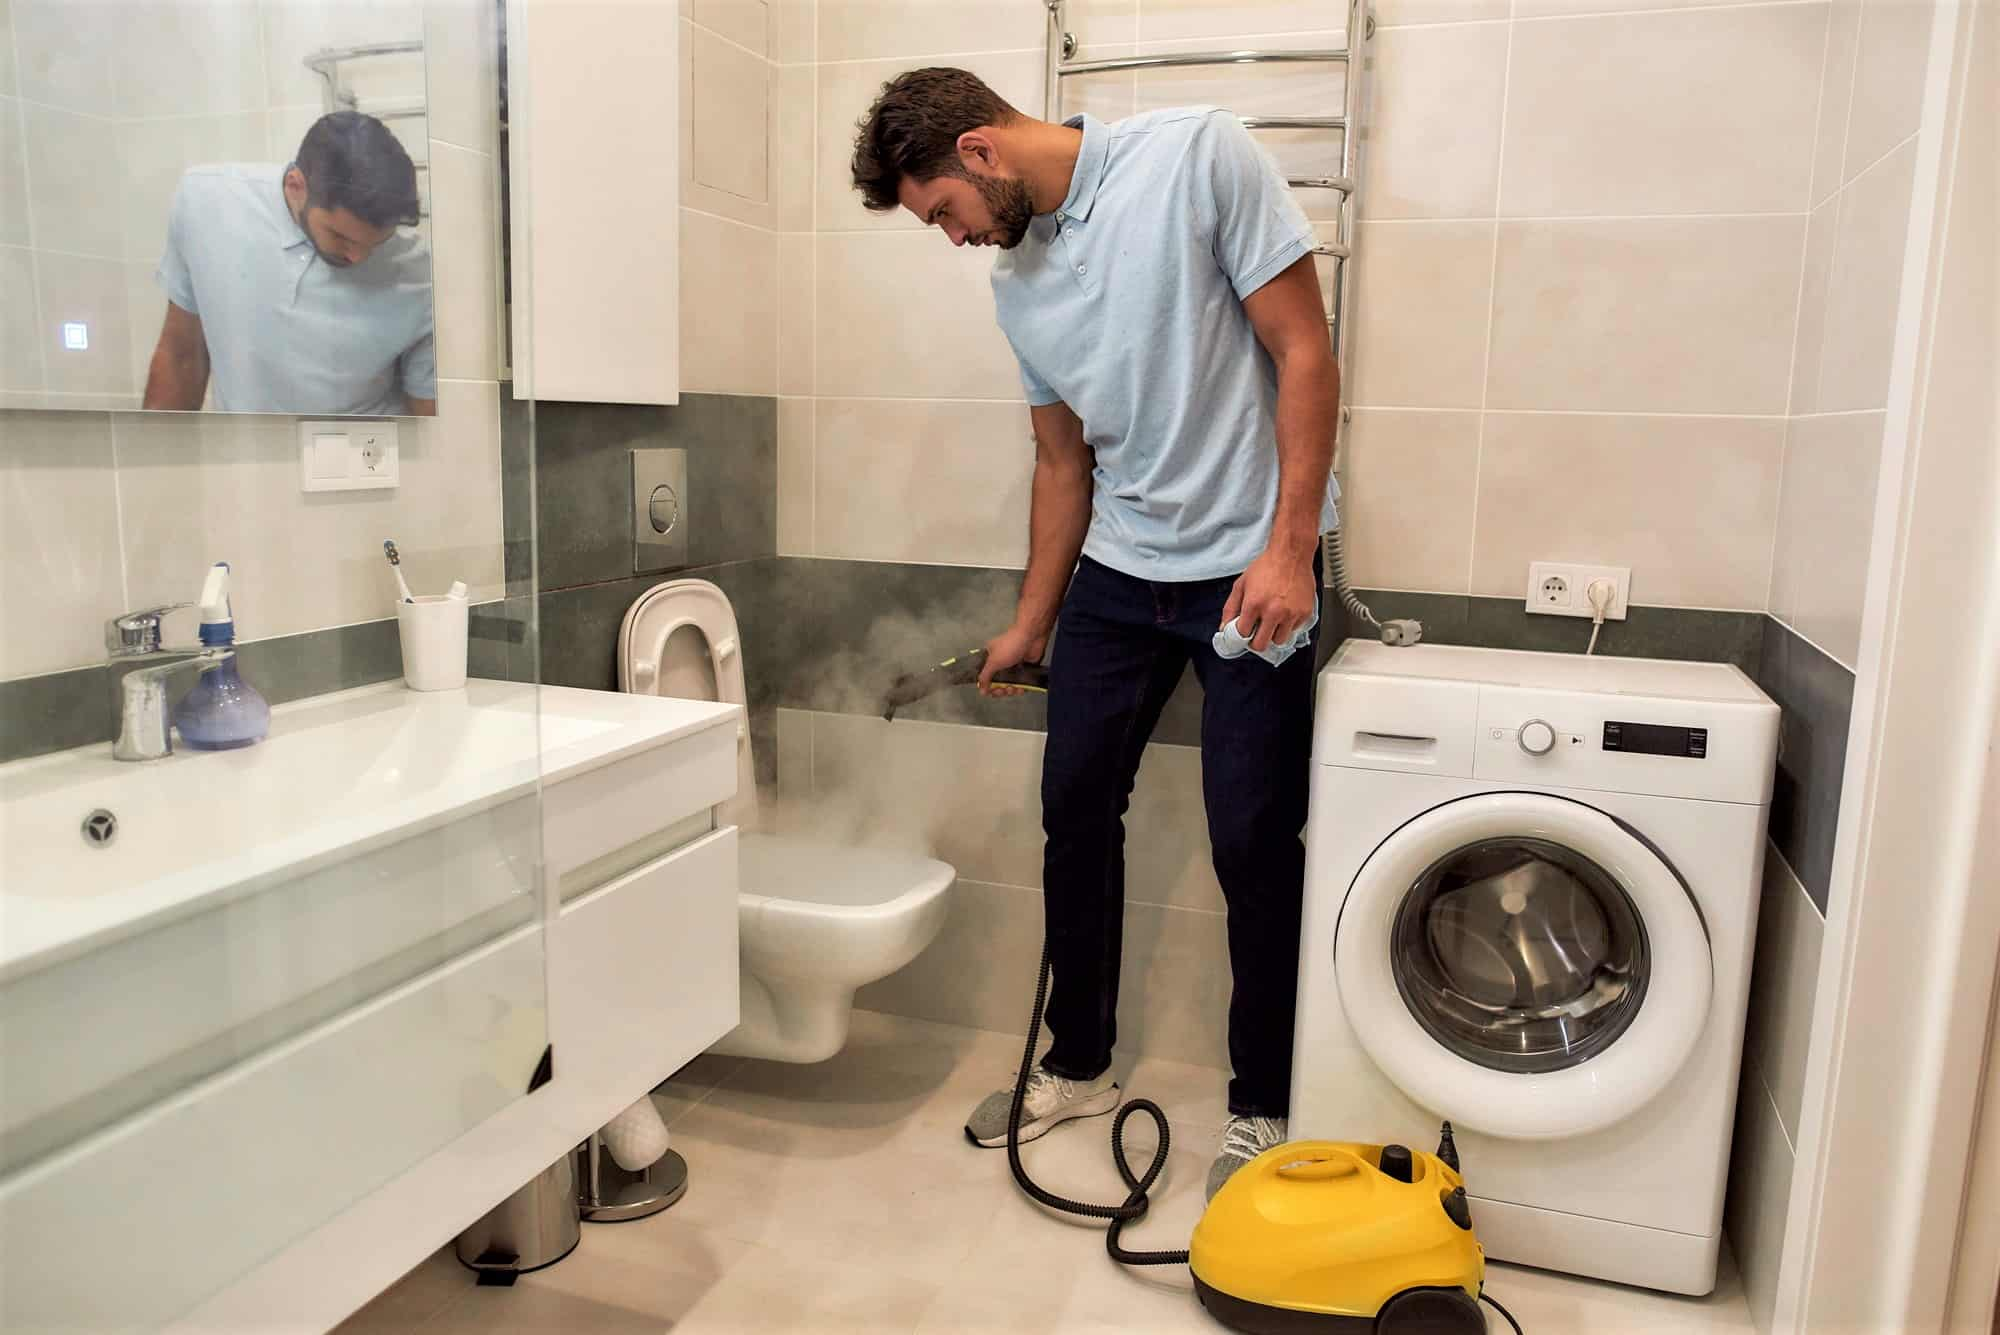 Young man steam cleaning a toilet and bathroom